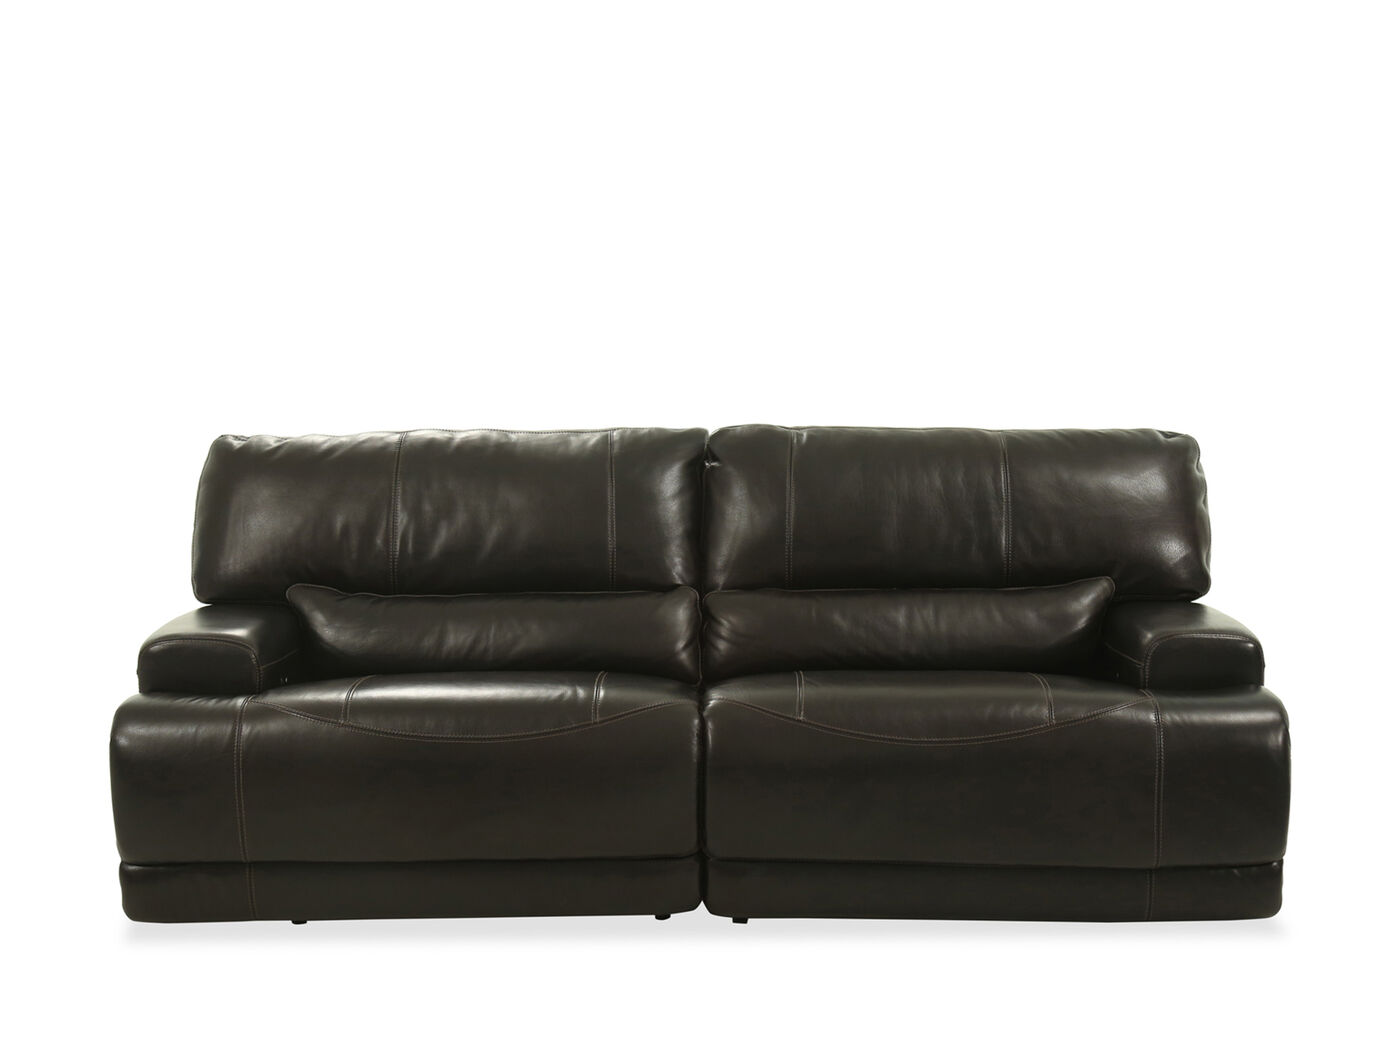 Power reclining leather 91 sofa in blackberry